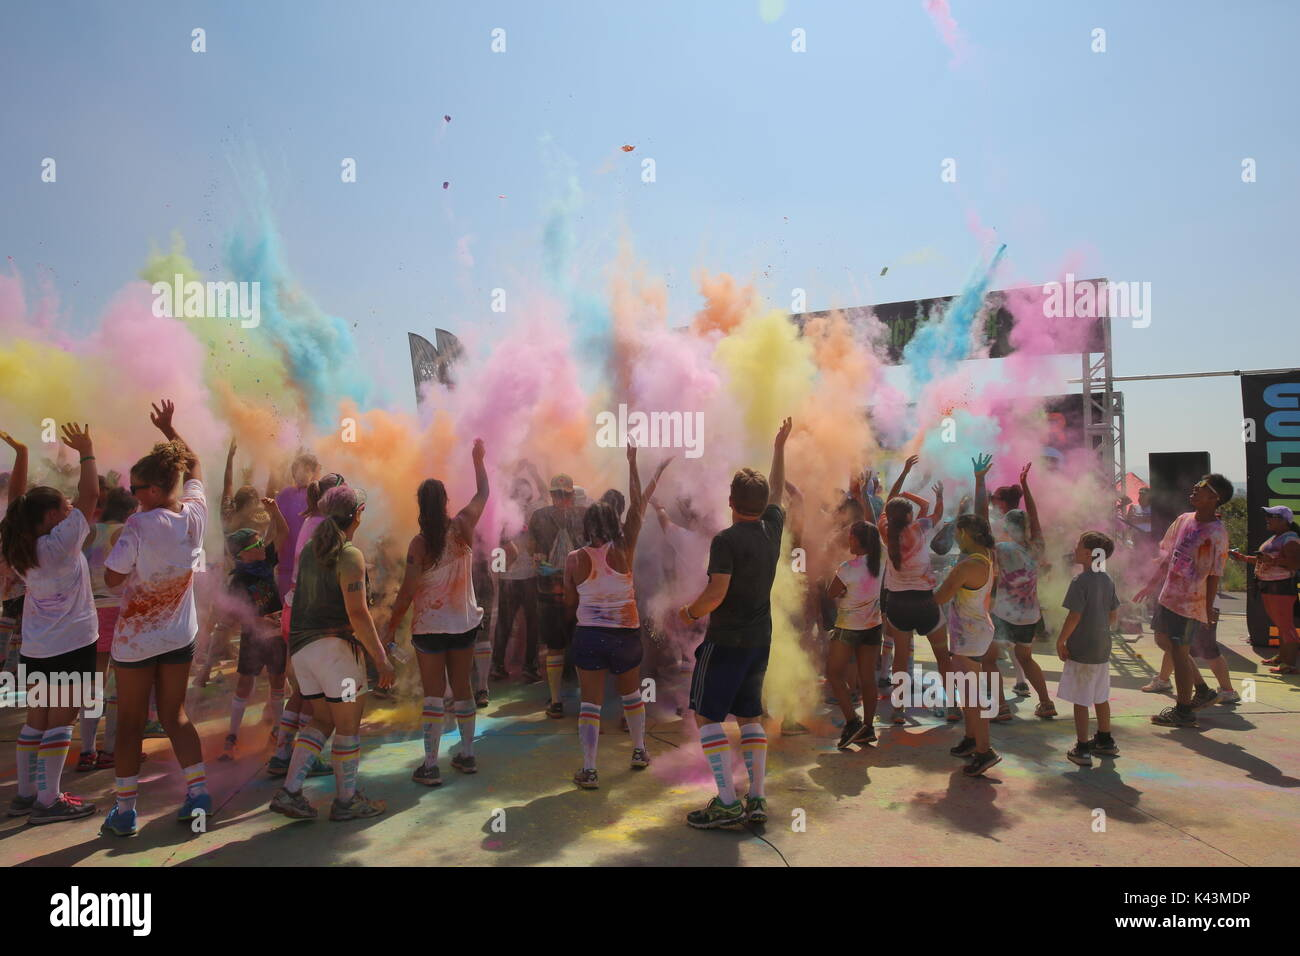 Runners throw color bombs in the air after complete the Color Me Rad 5K marathon run at the Marine Corps Air Station Miramar August 22, 2015 in San Diego, California.  (photo by Kimberlyn Adams via Planetpix) - Stock Image